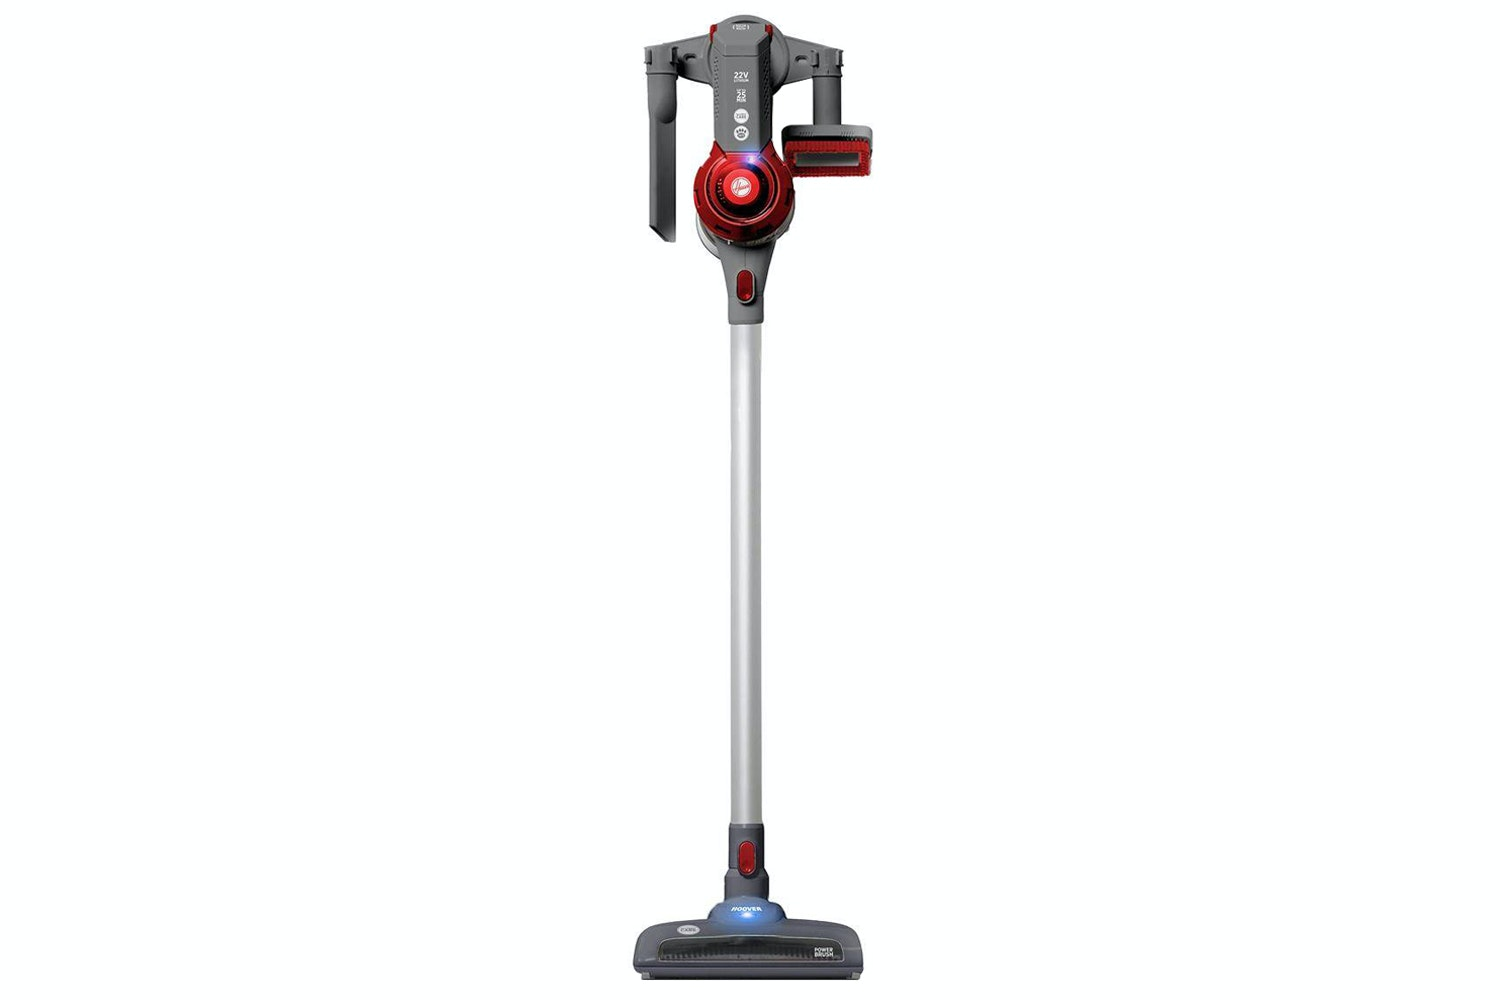 Hoover Freedom Pets Cordless Vacuum Cleaner | FD22RP